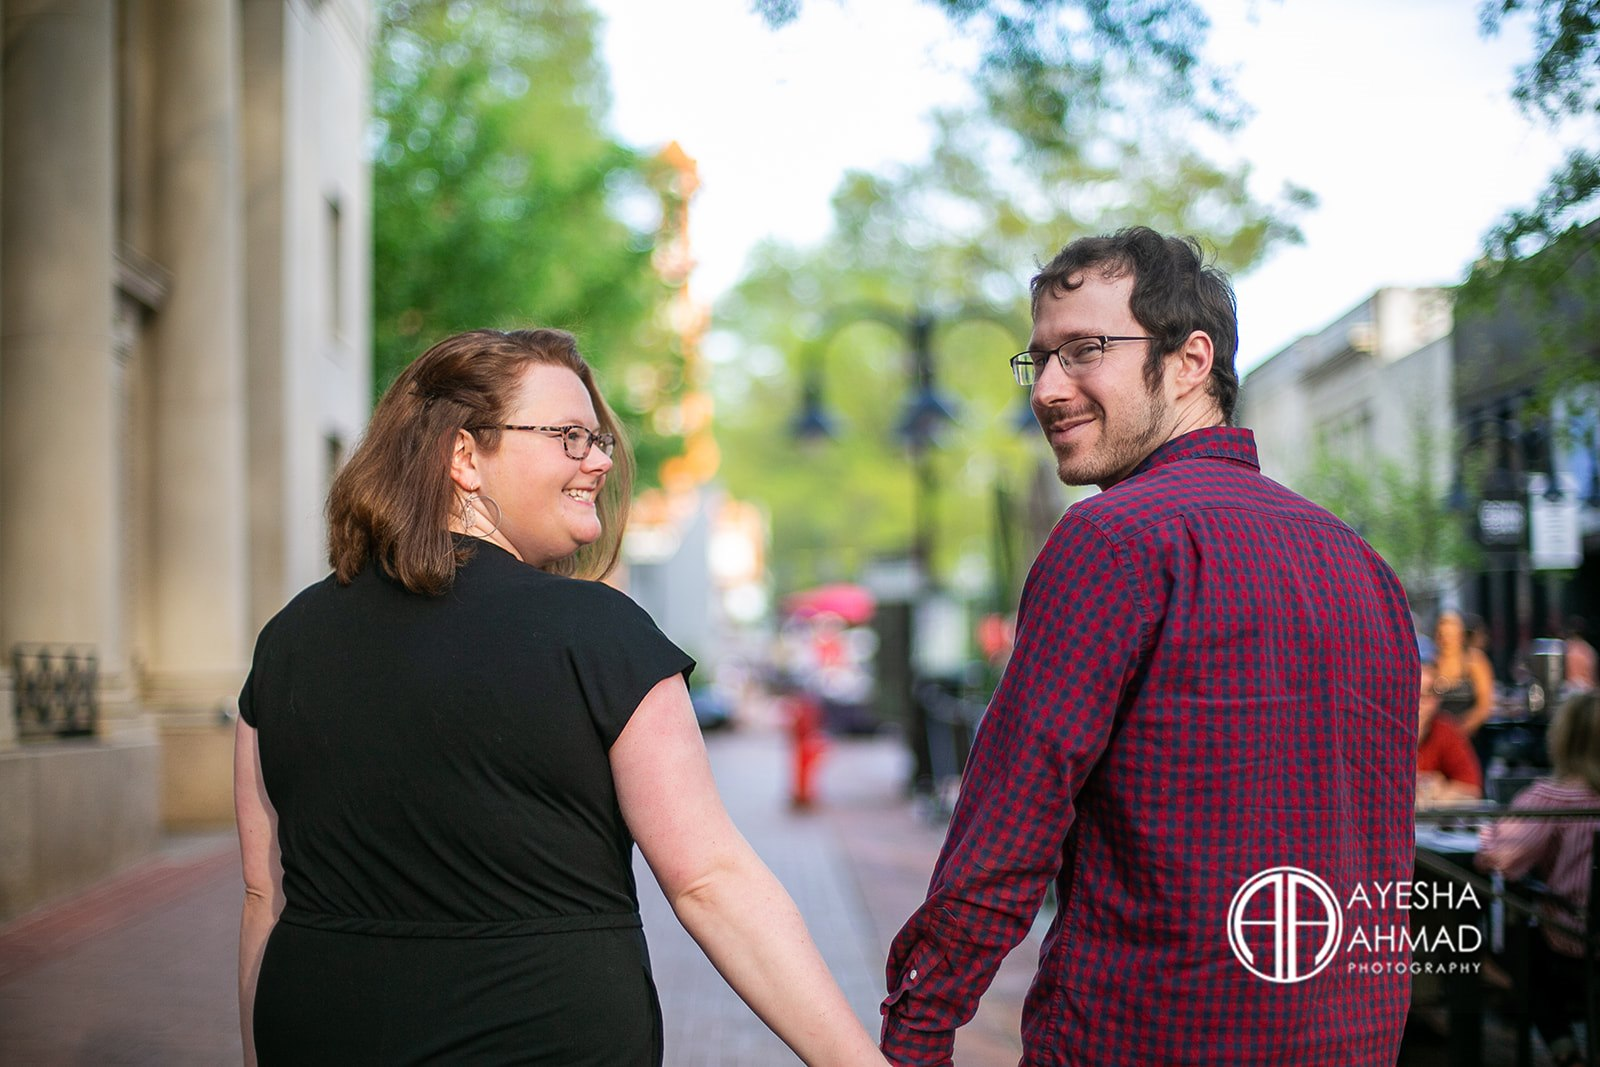 Jen and cameron hold hands during couples session in Downtown Charlottesville Ayesha Ahmad Photography